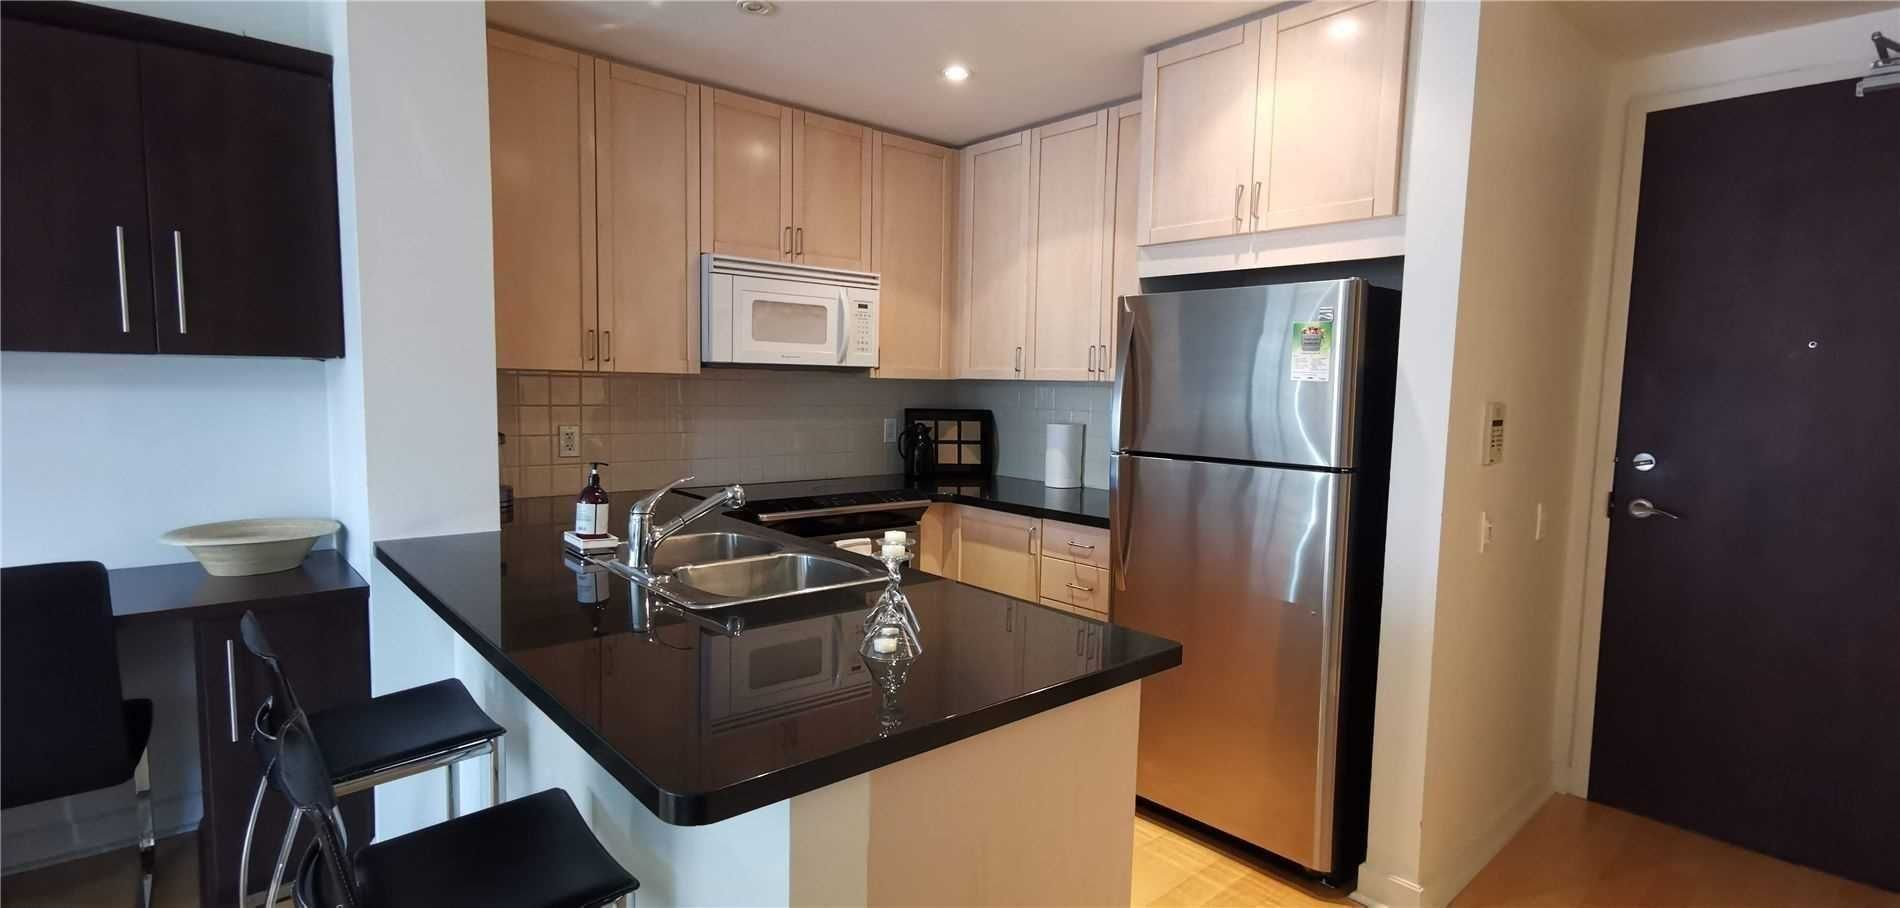 85 Bloor St E, unit 1212 for rent in Toronto - image #1